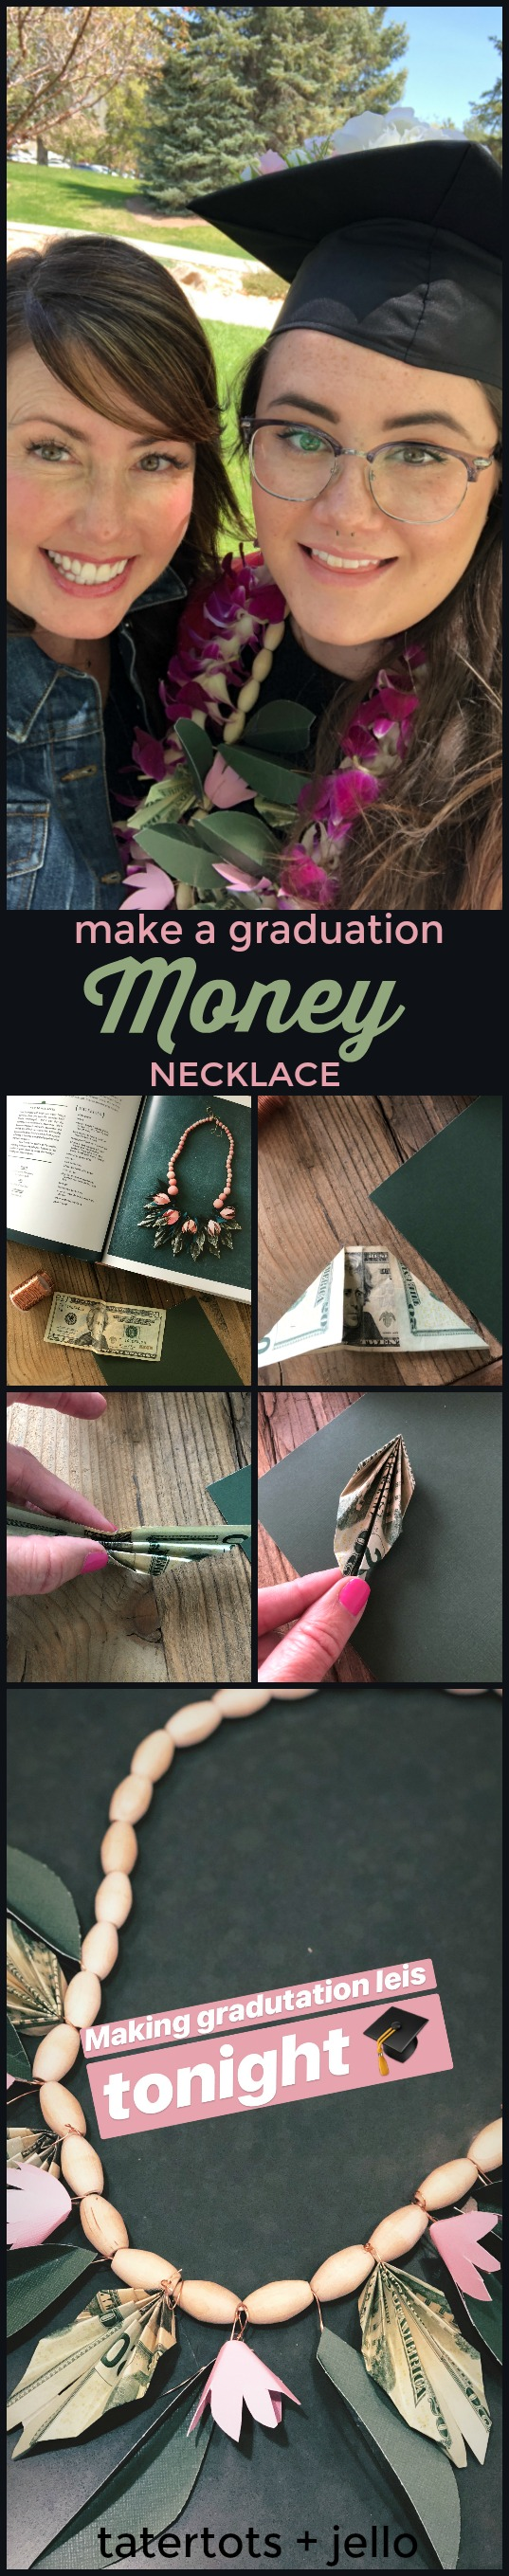 Make a Graduation Money Lei Necklace. Instead of giving money in an envelope for graduation, get creative and make a graduation lei necklace with MONEY leafs! After graduation the graduate can take the paper elements off and still have a cute wood necklace to wear and remember their special day!